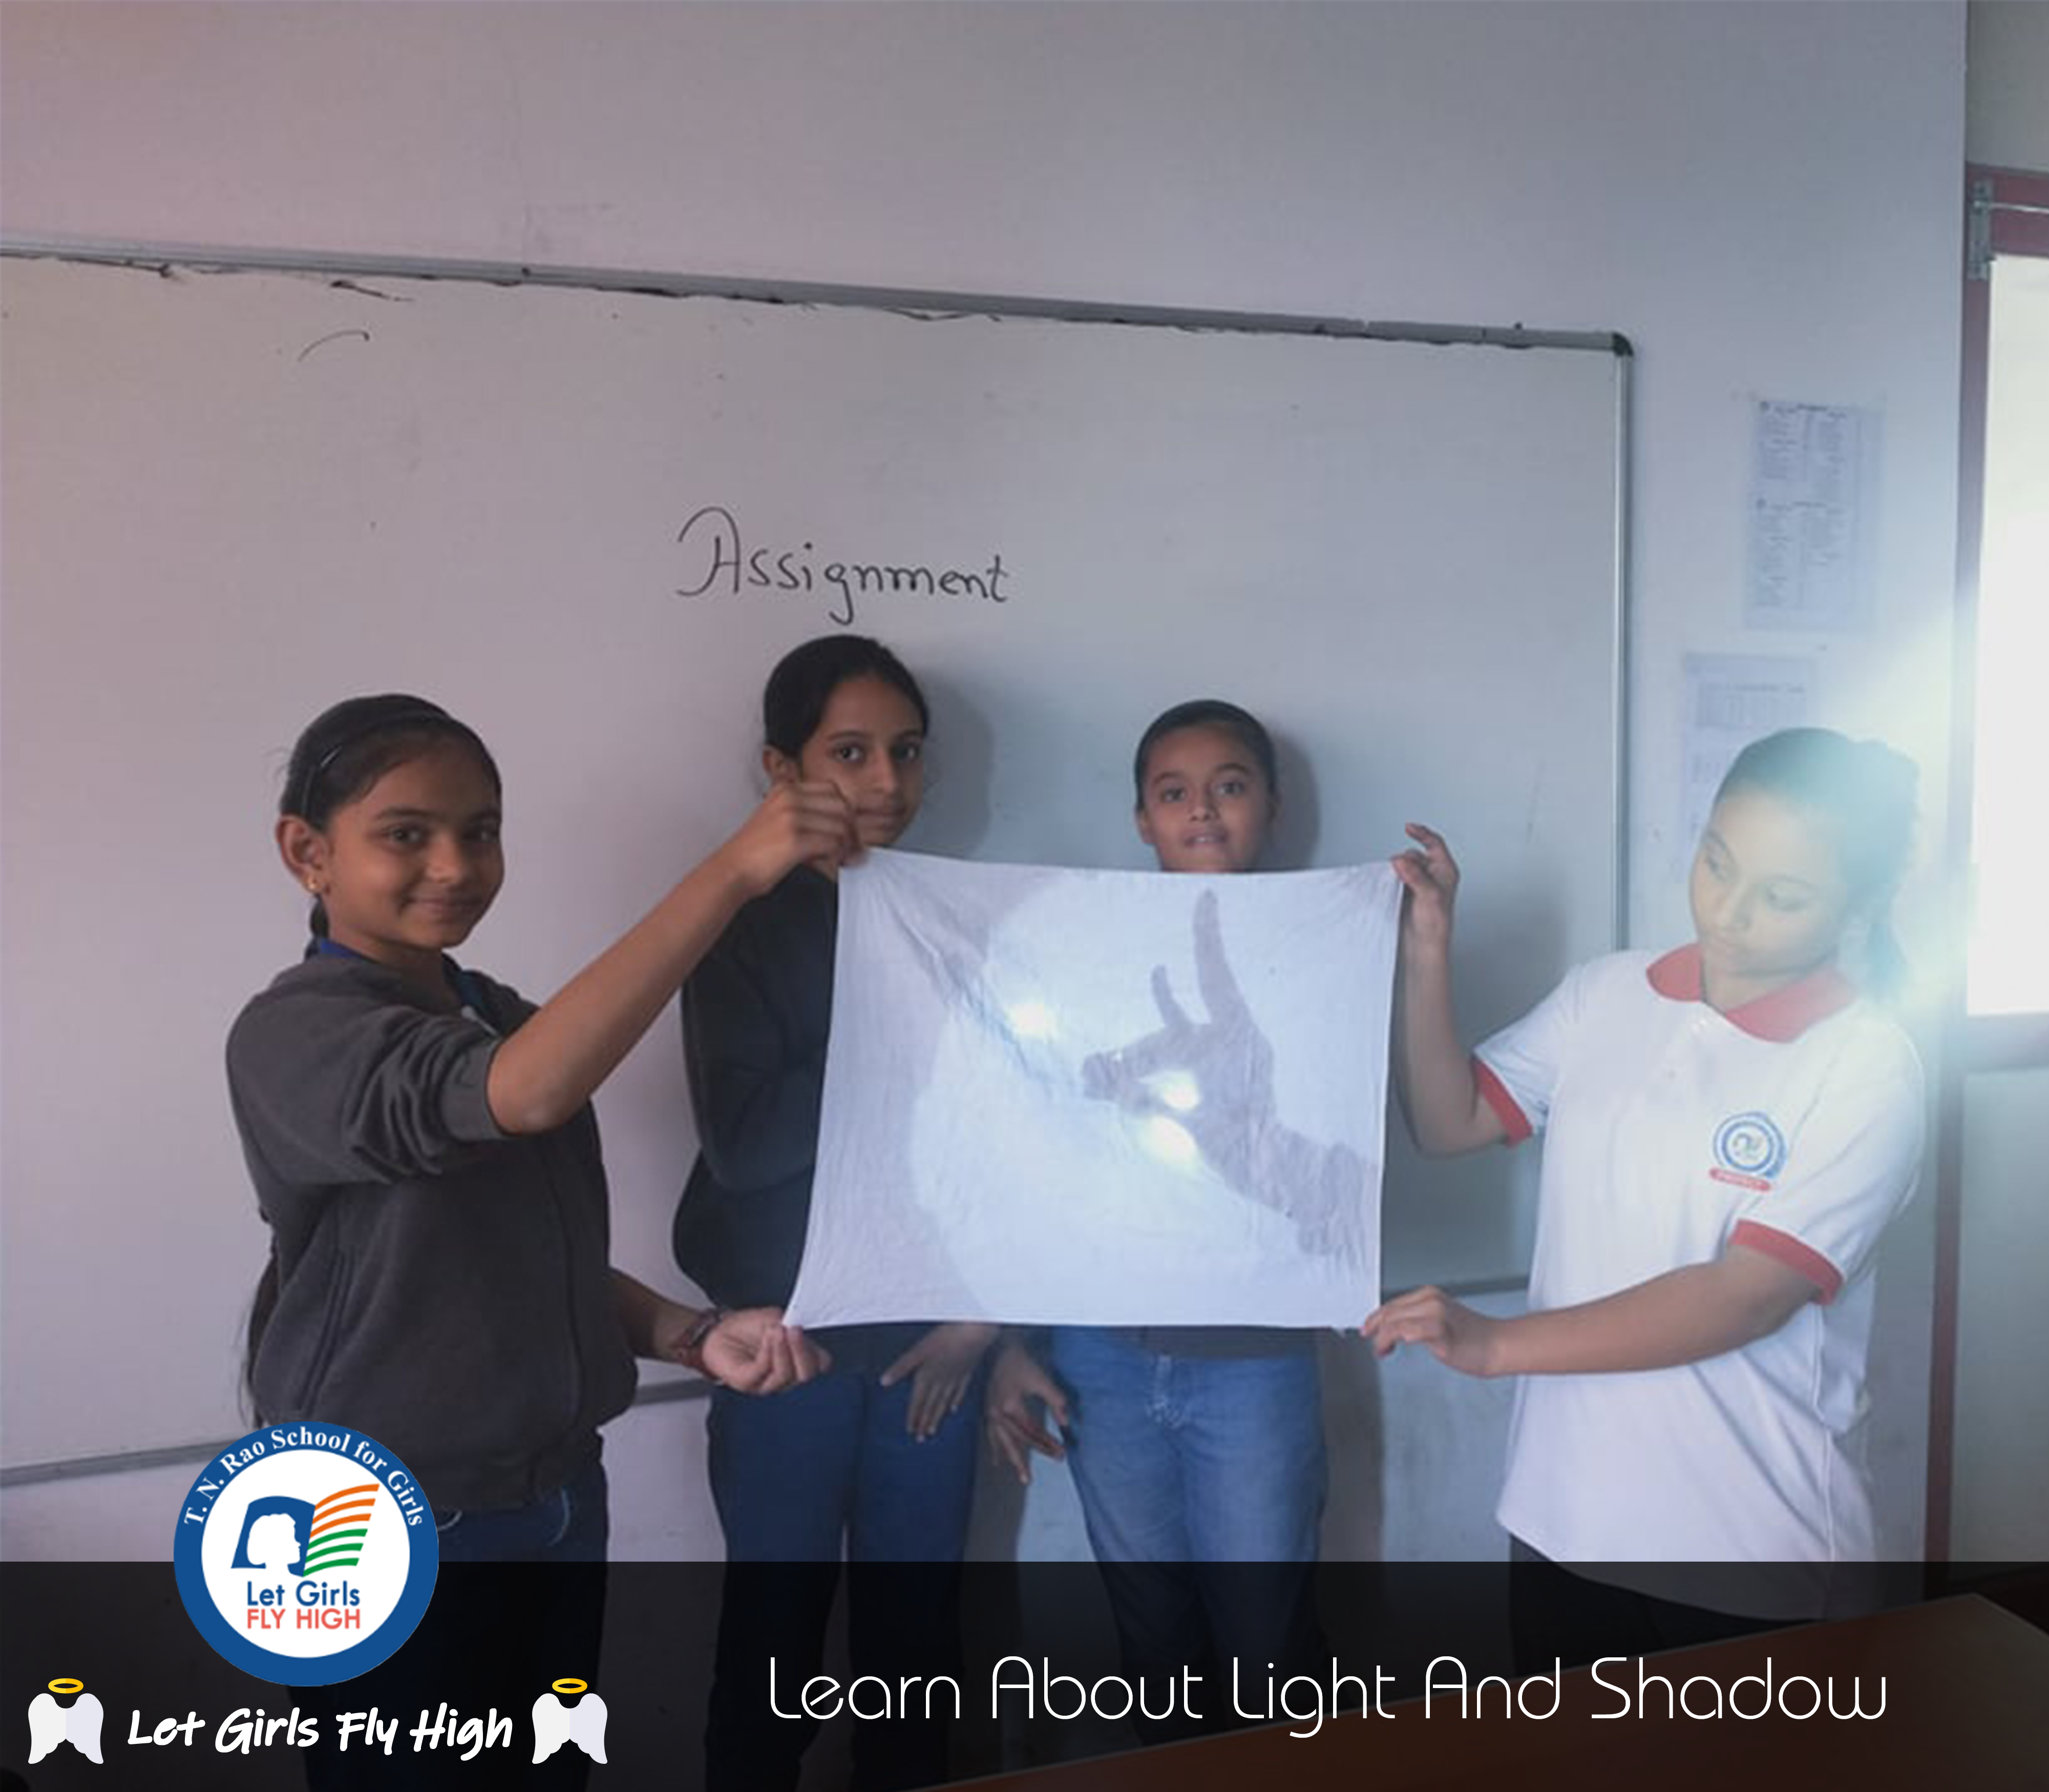 Light, shadow and reflection science activity